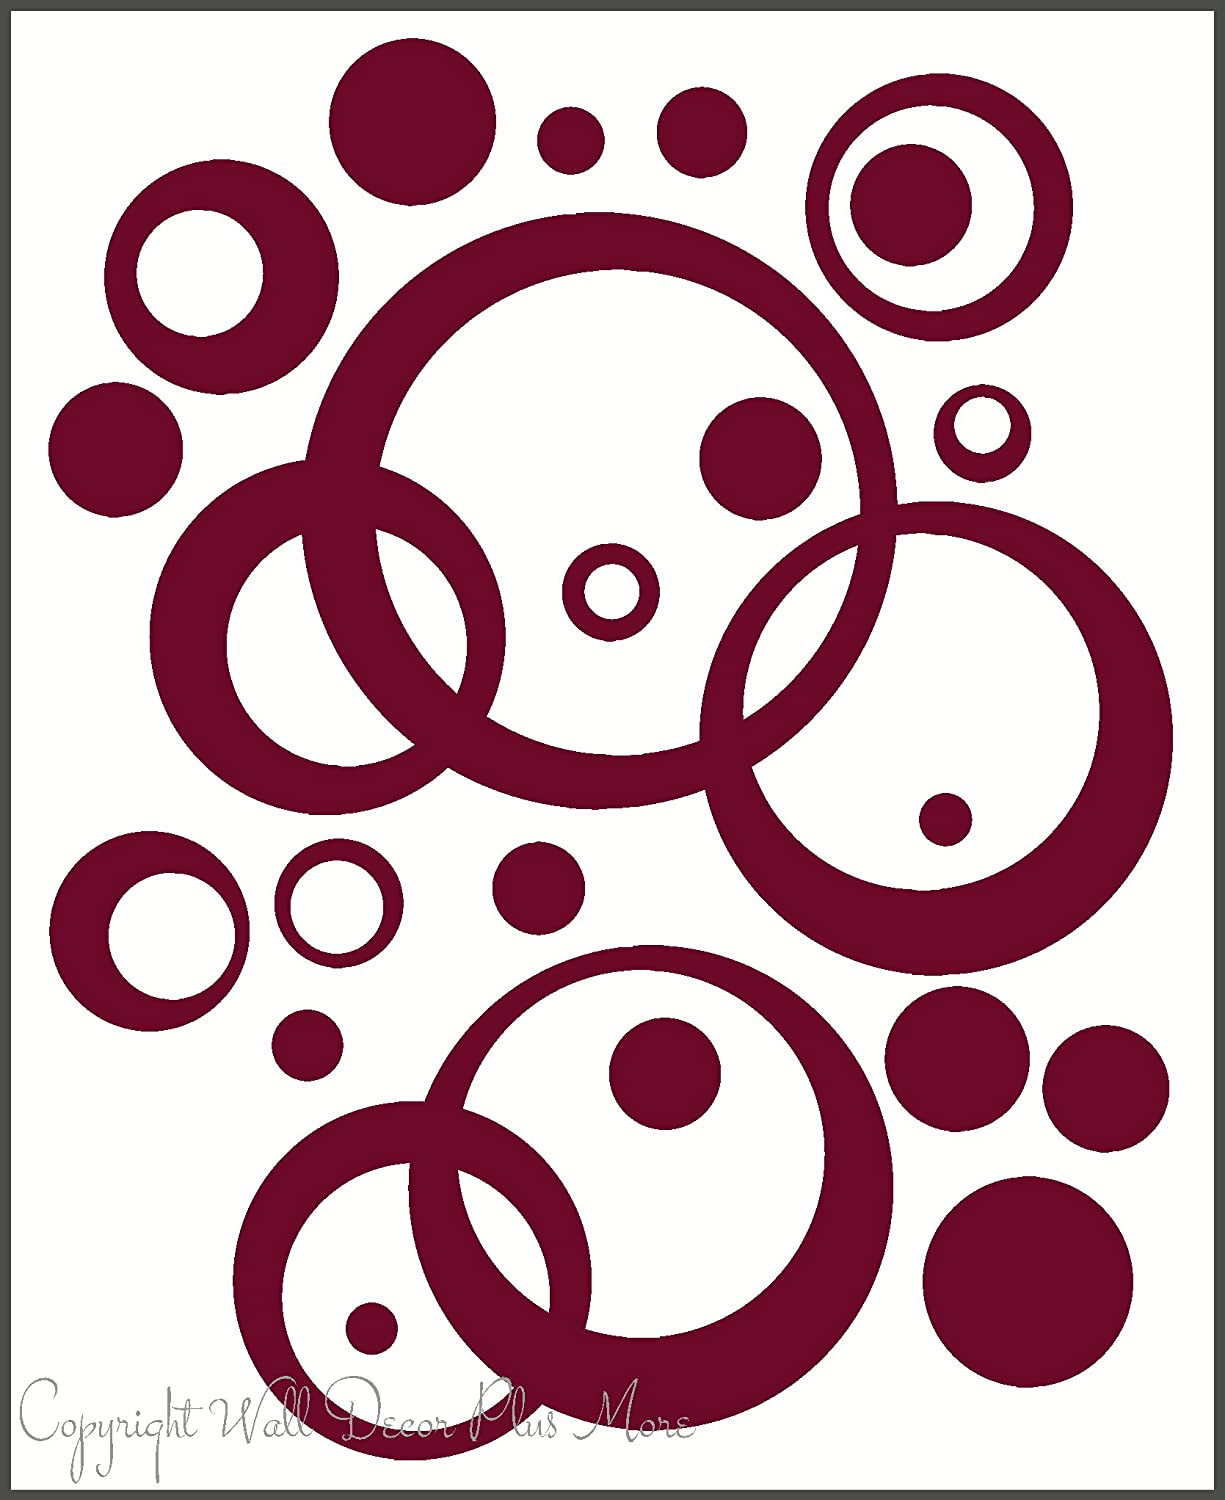 Wall Vinyl Sticker Decal Circles, Rings, Dots 25+pc 11in Large Home Décor - Burgundy